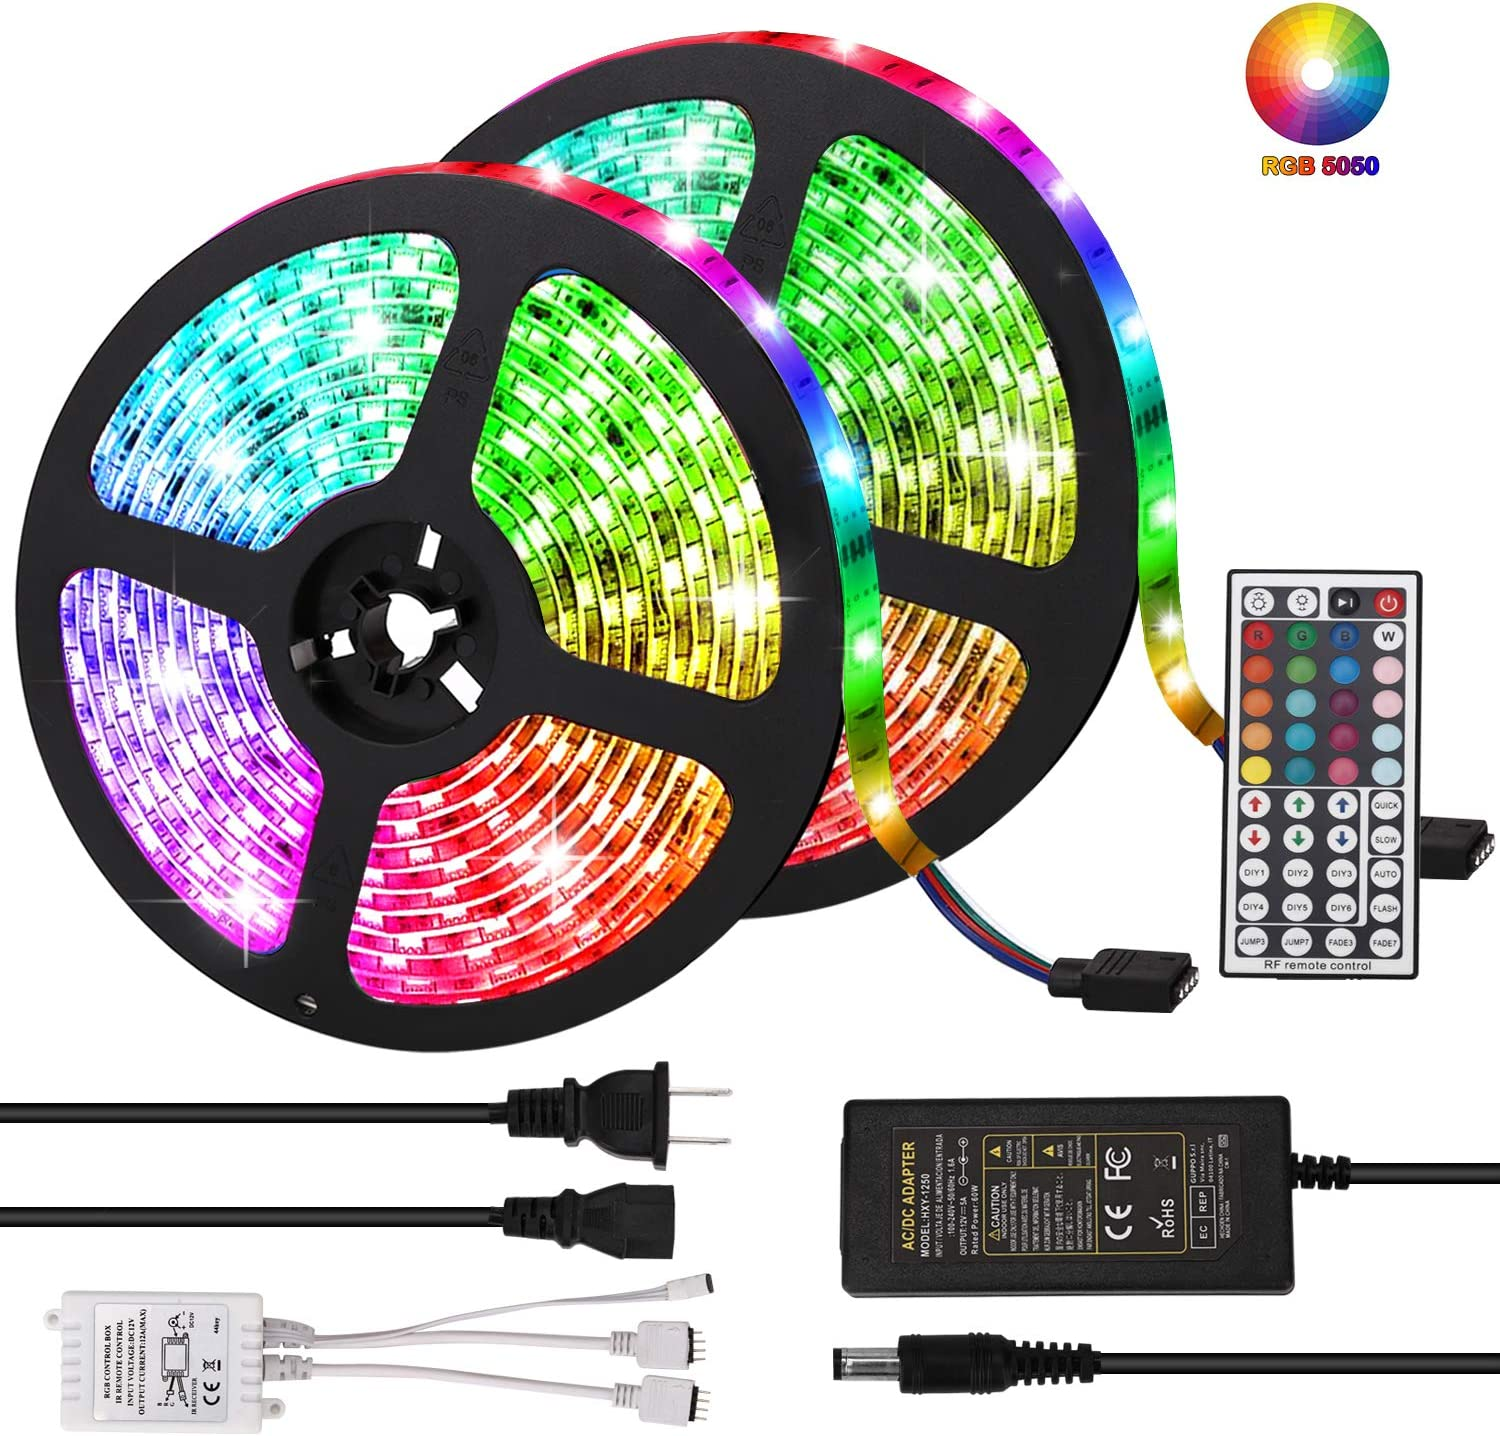 LED Strip Lights, Targherle 33ft/10M Led Light Strip SMD 5050 IP65 Waterproof RGB Flexible Light Strip Kit with 44 Key IR Remote RGB Controller, Strengthen 3M Tape, 12V 5APower Supply